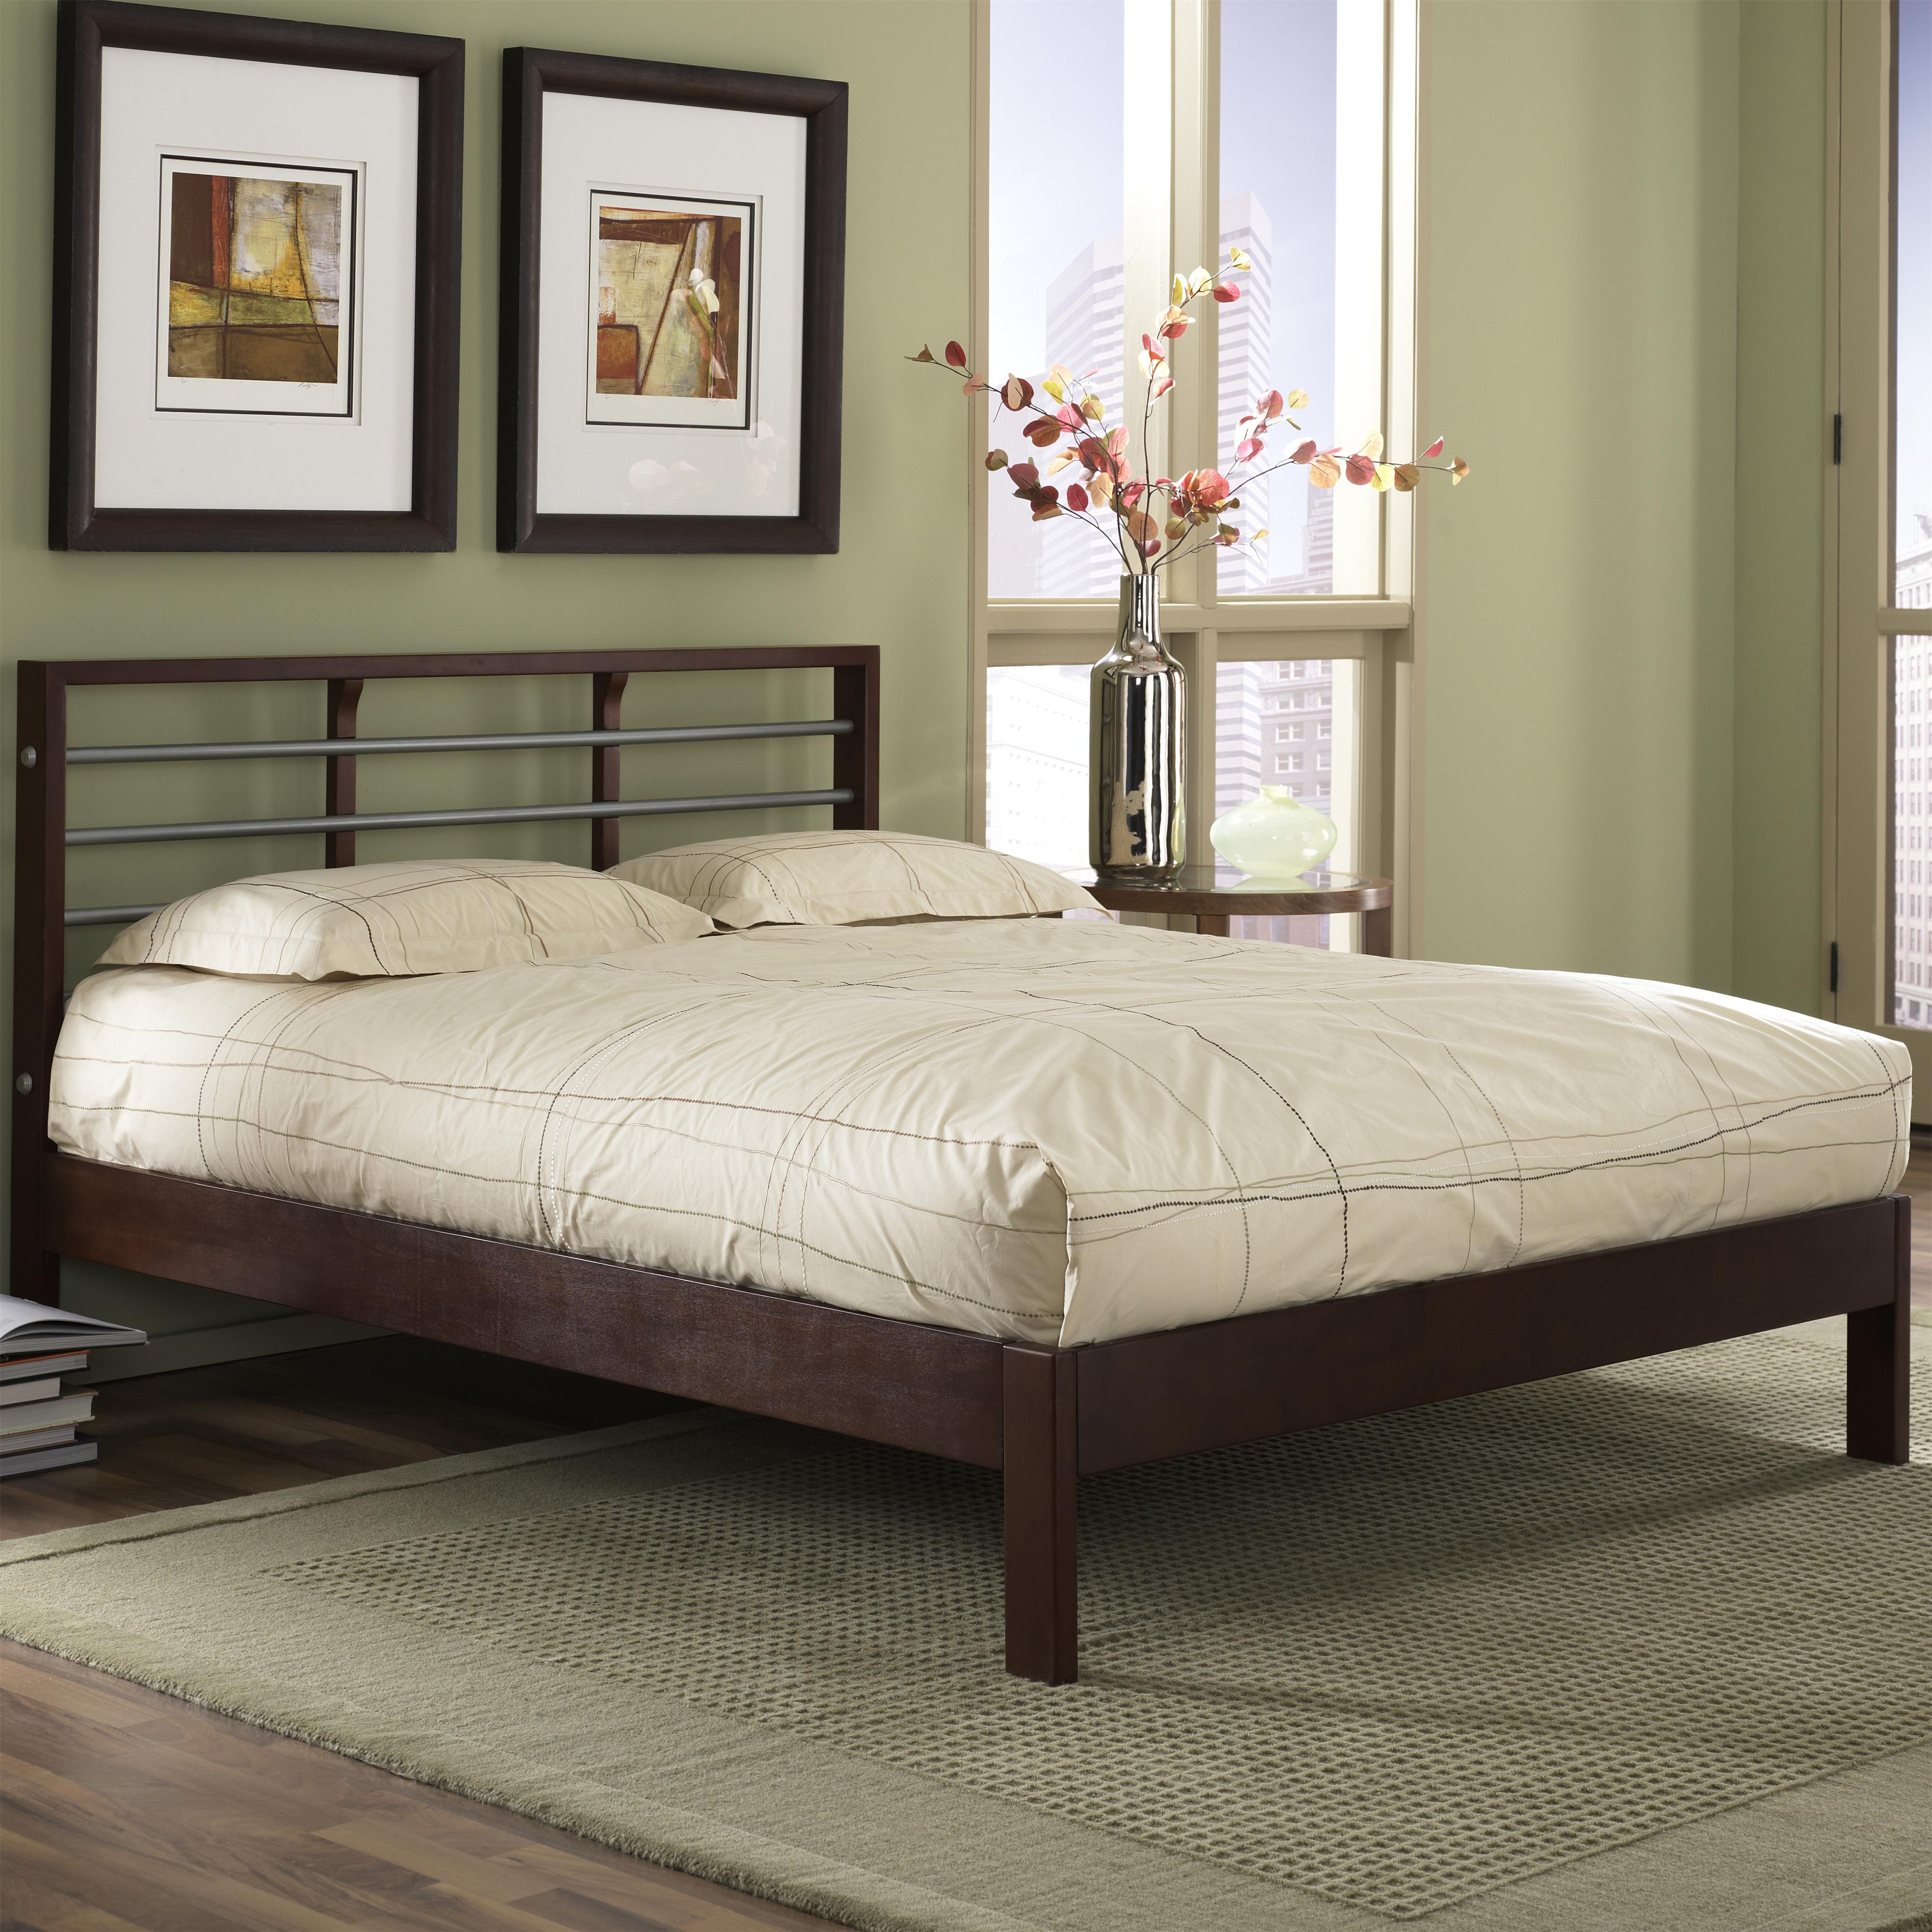 Fashion Bed Group Wood And Metal Beds King Delmar Bed W/ Side Rails   AHFA    Platform Or Low Profile Bed Dealer Locator